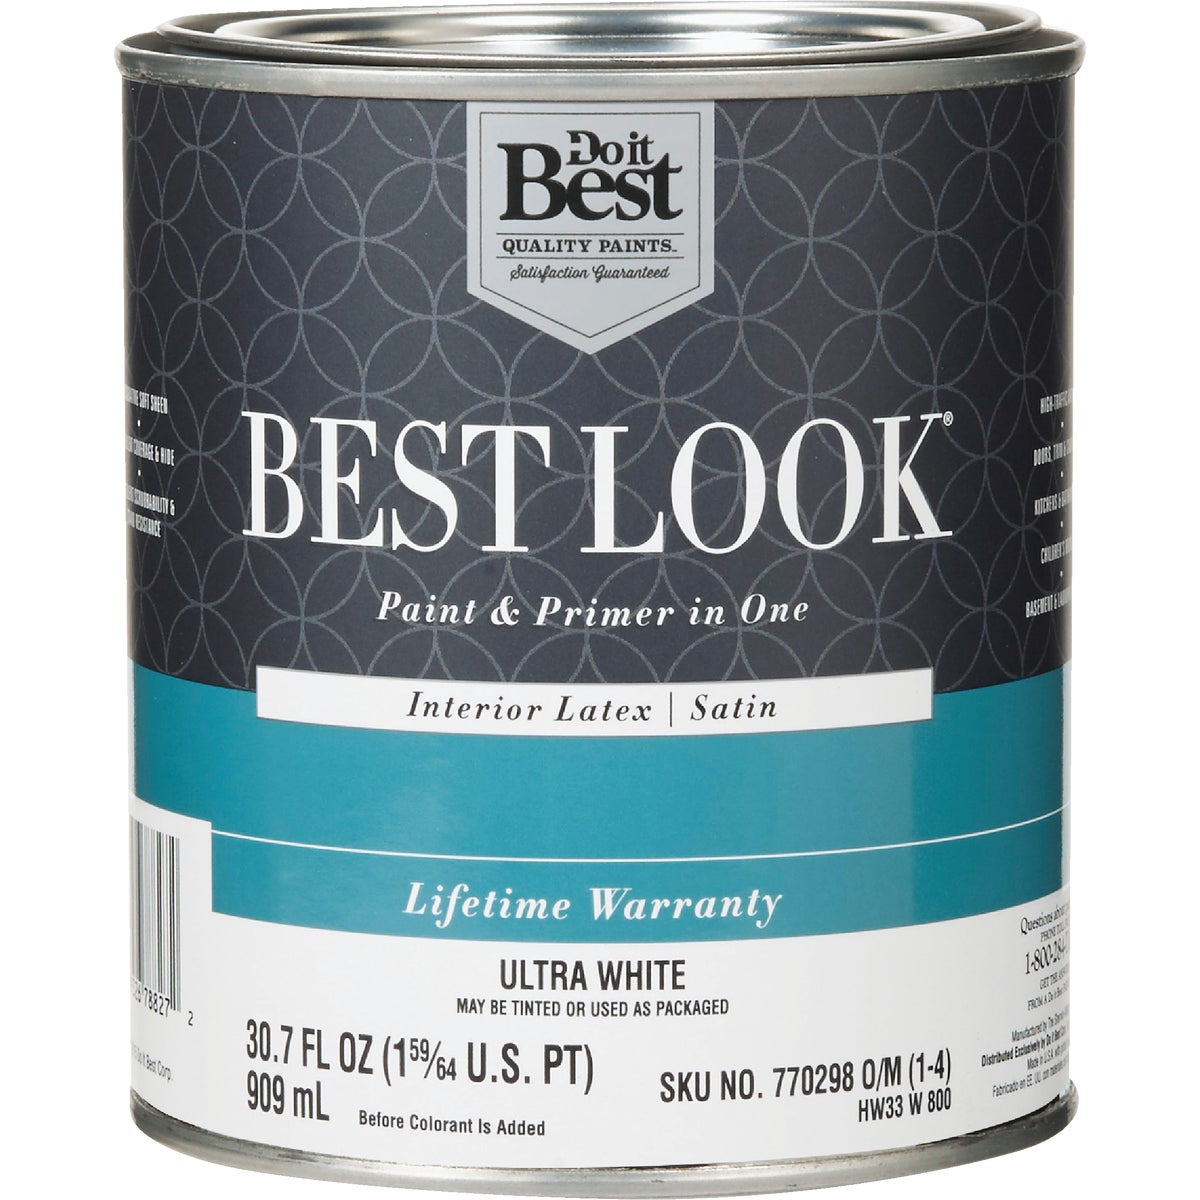 INT SAT ULTRA WHT PAINT - HW33W0800-14 by Do it Best